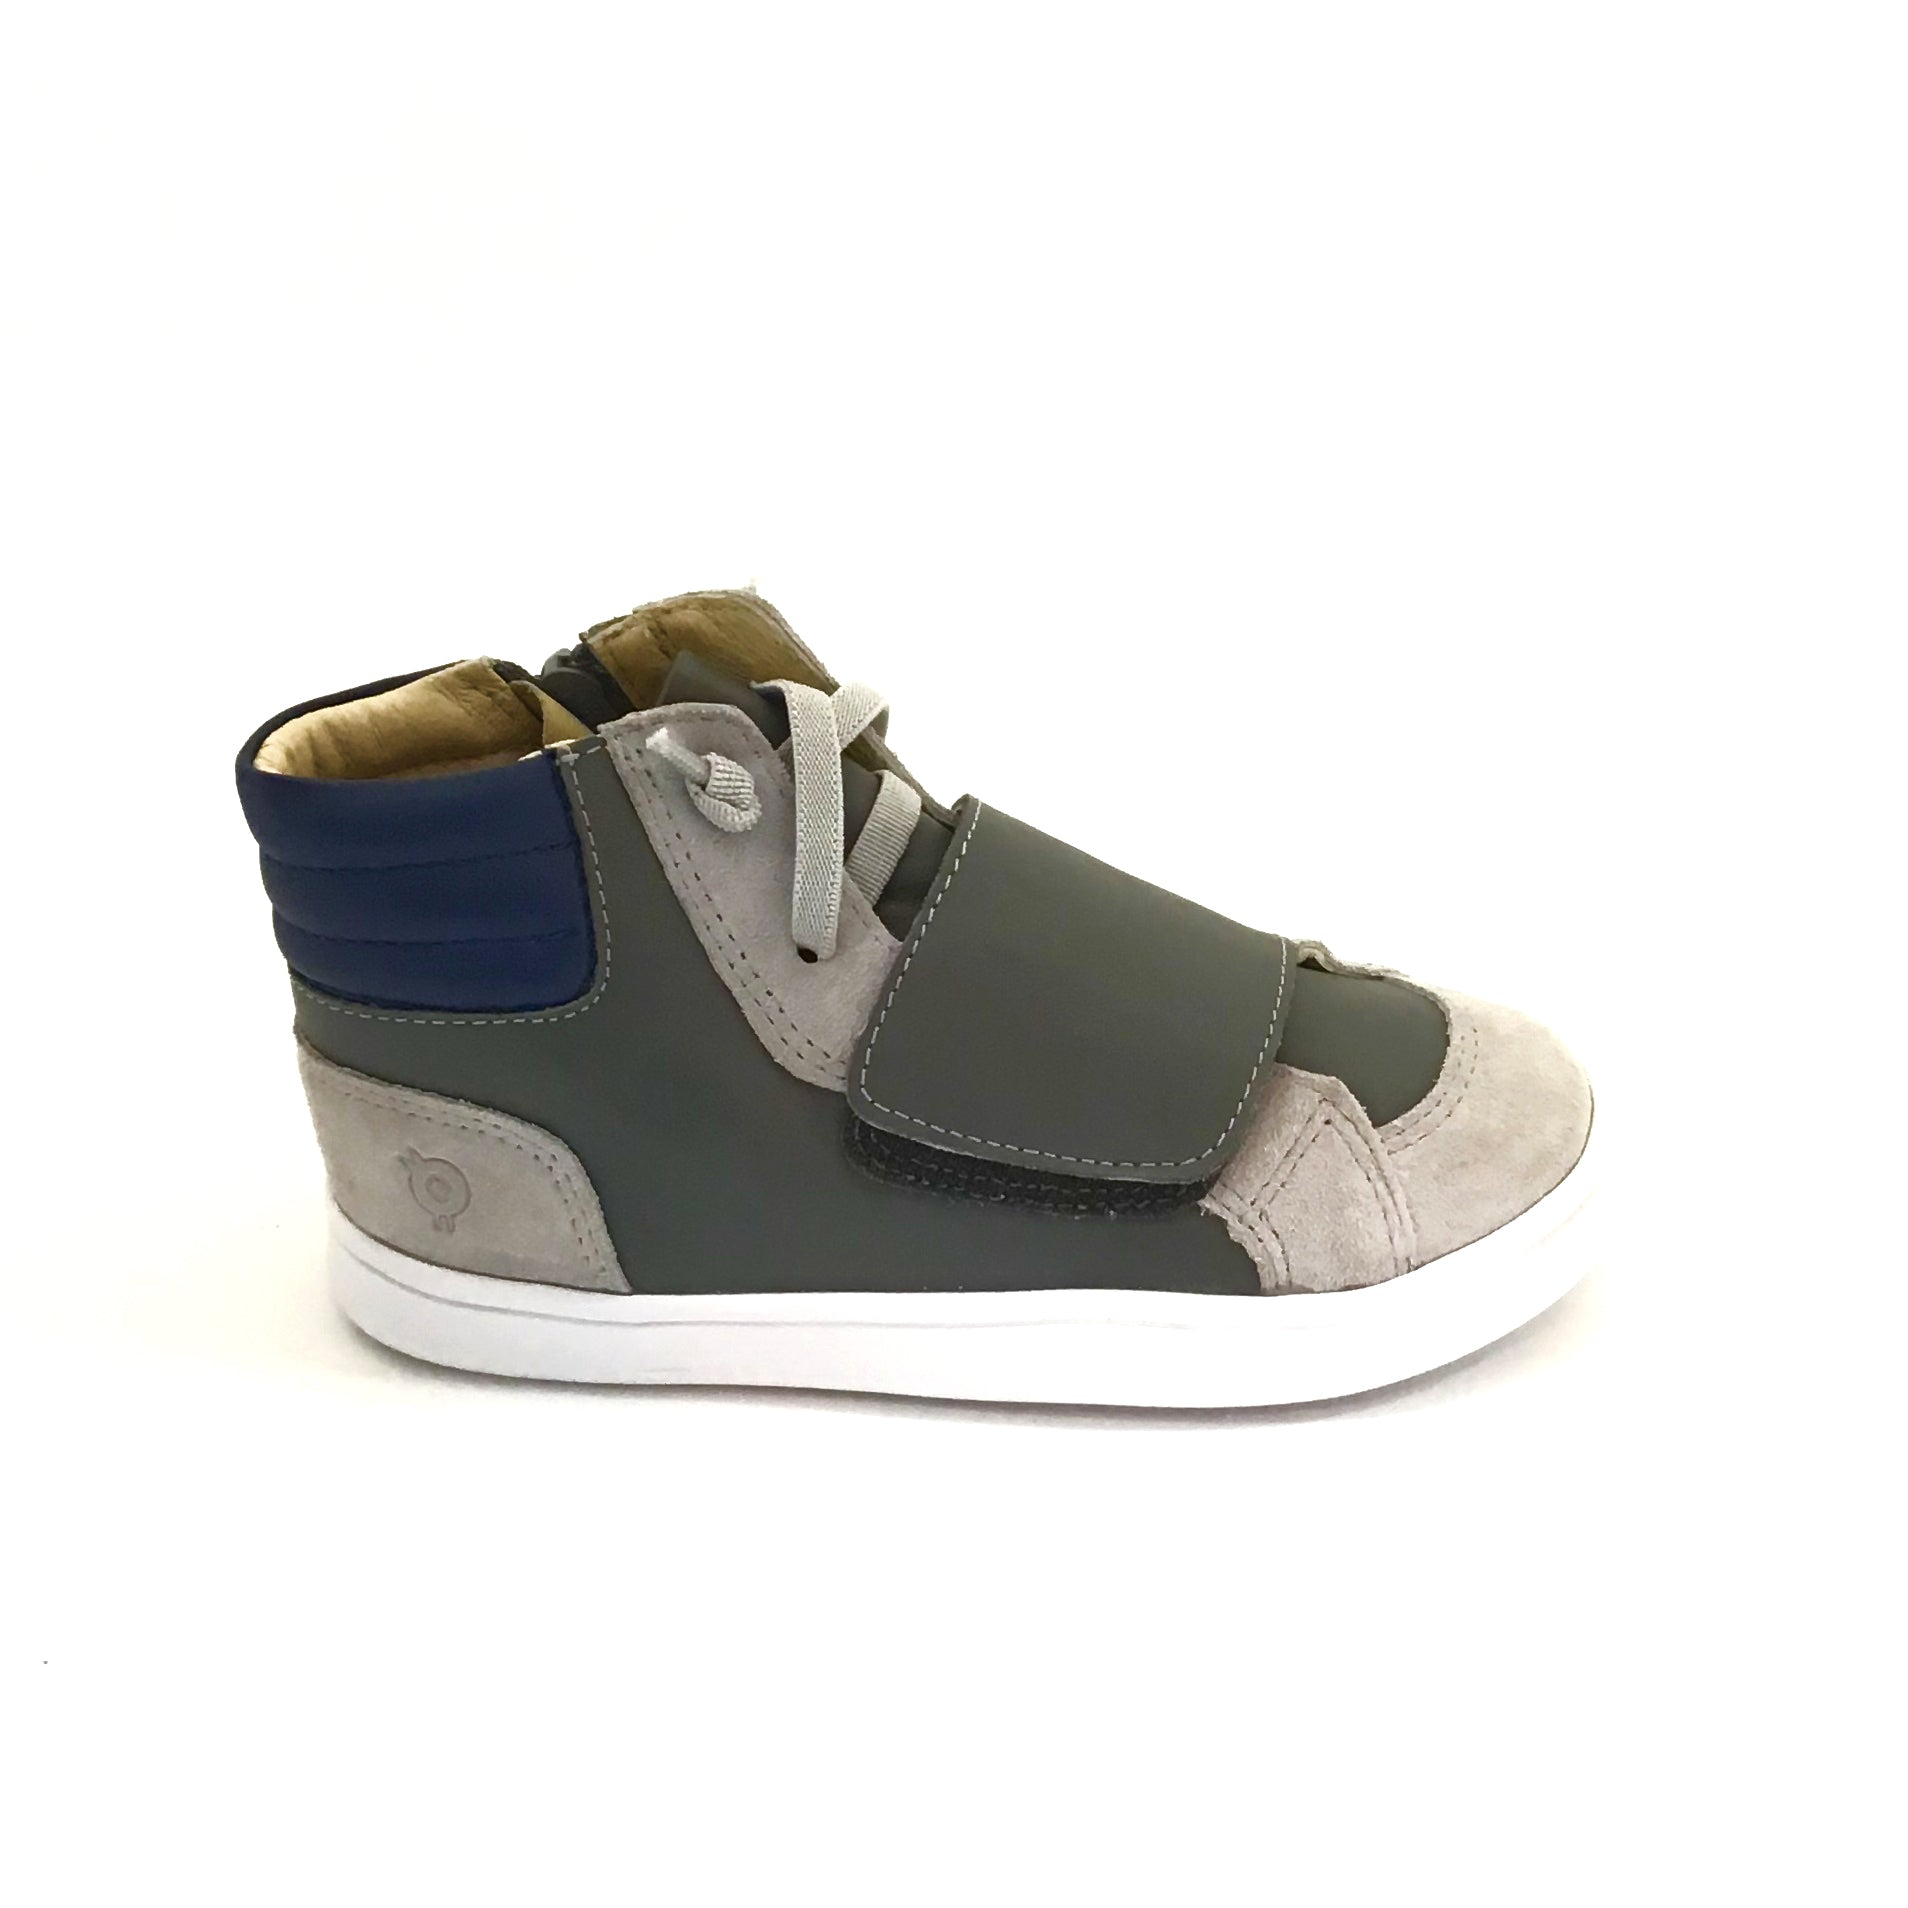 Old Soles Grey High Top Sneaker with Velcro Strap and Laces